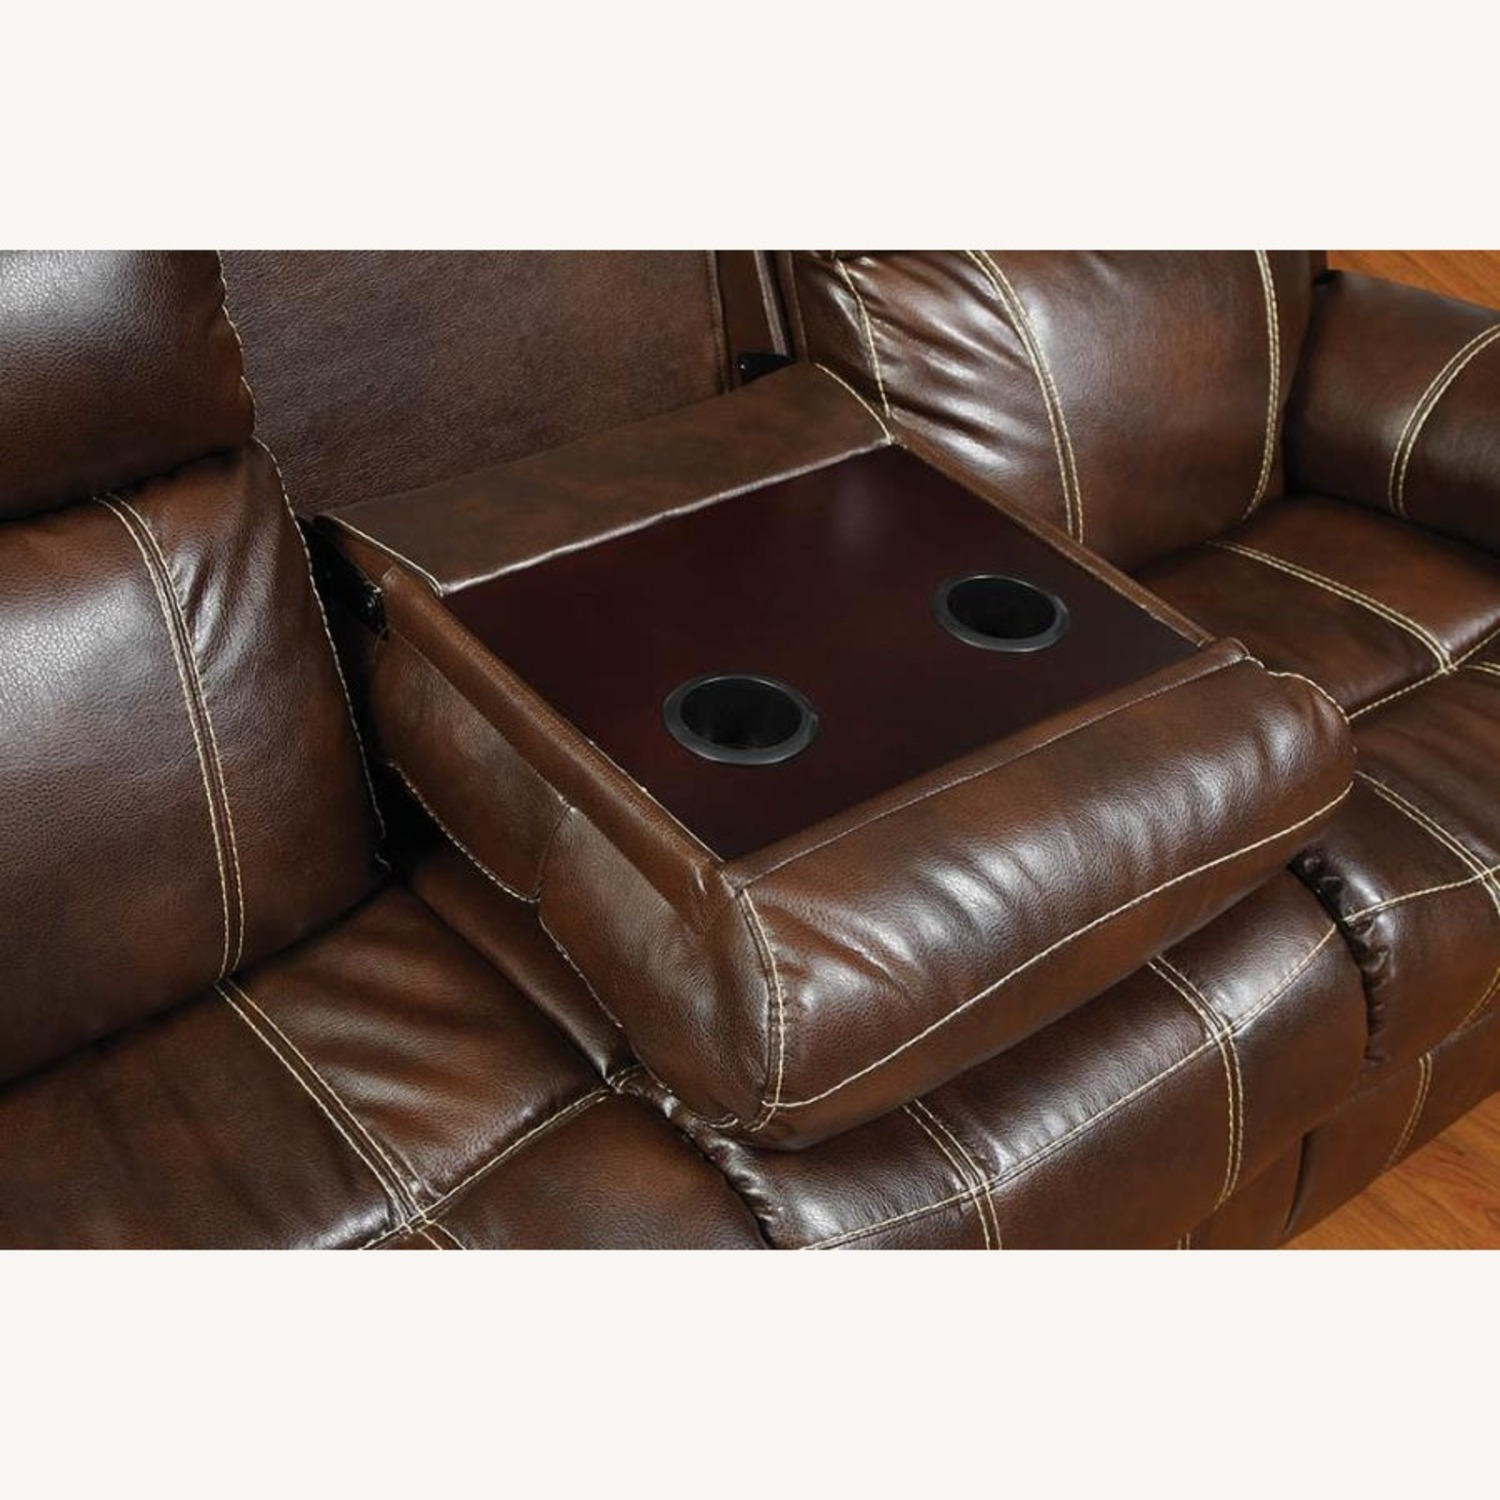 Motion Sofa In Chestnut Leather W/ Storage Drawer - image-4